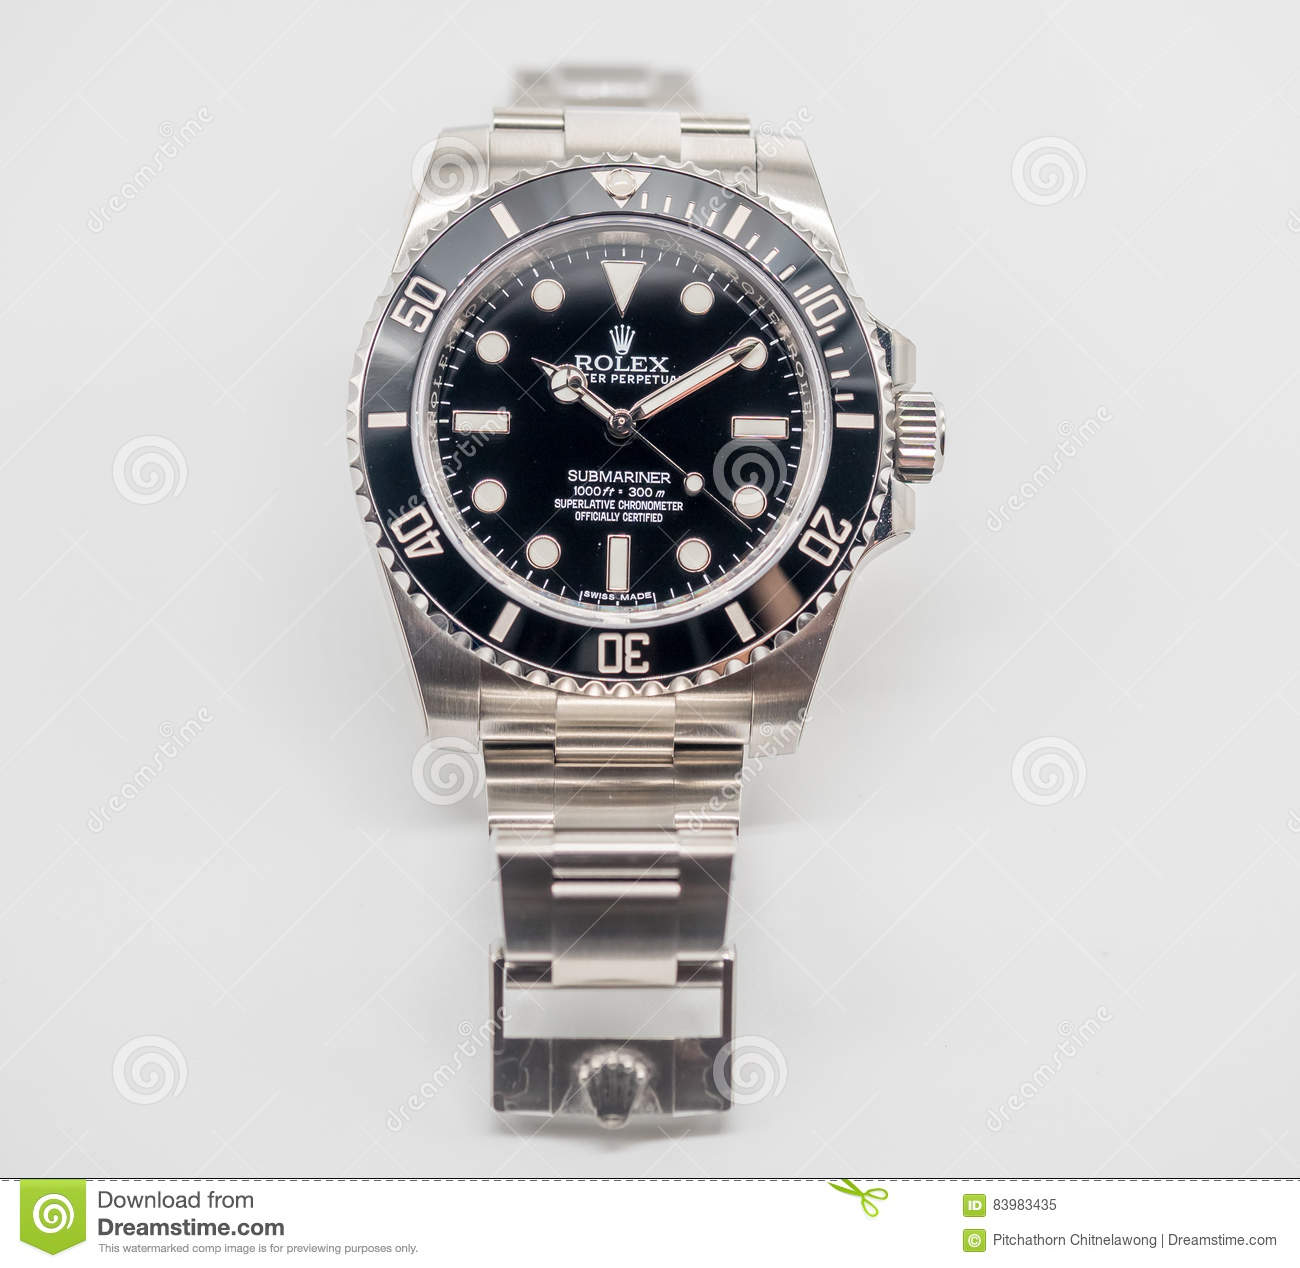 Rolex Submariner On White Background Editorial Image - Image of hand